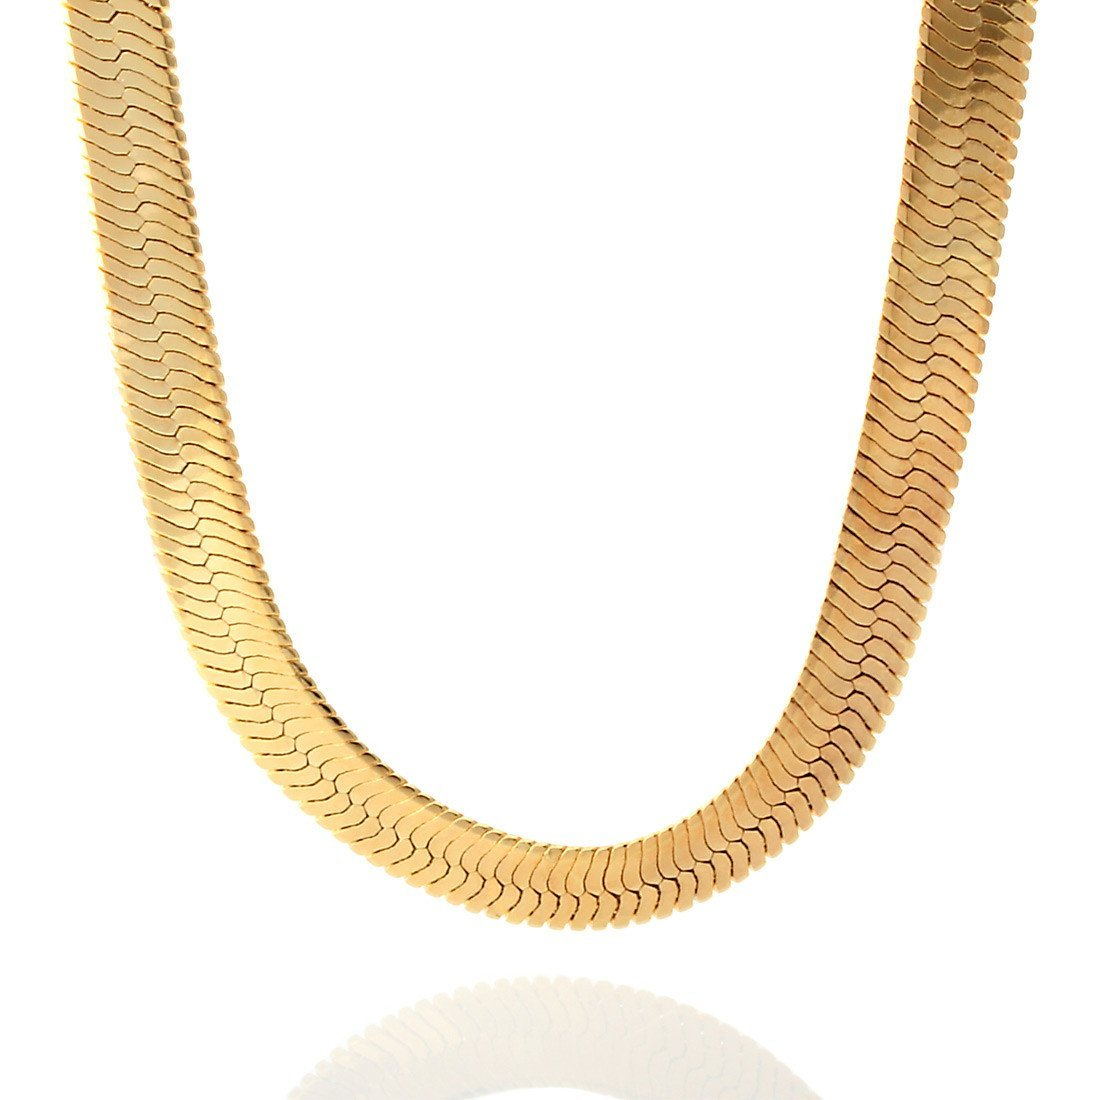 Chains - 10mm King Ice 14K Gold Herringbone Chain -   jetcube